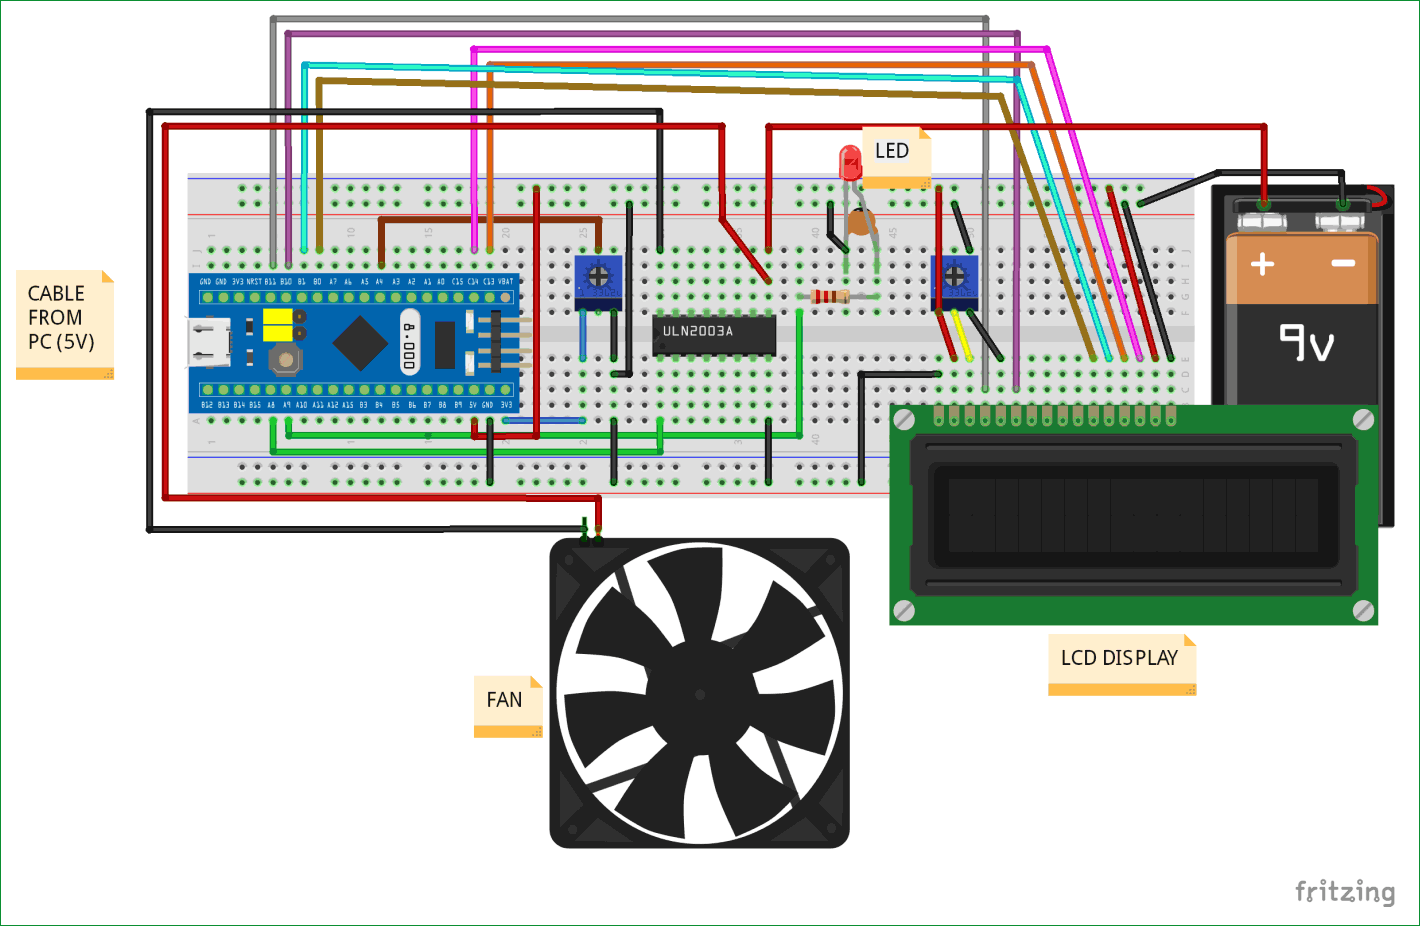 Pulse Width Modulation Pwm In Stm32f103c8 Controlling Speed Of Dc Fan Motor Controller With Electronic Projects Circuits Circuit Diagram For